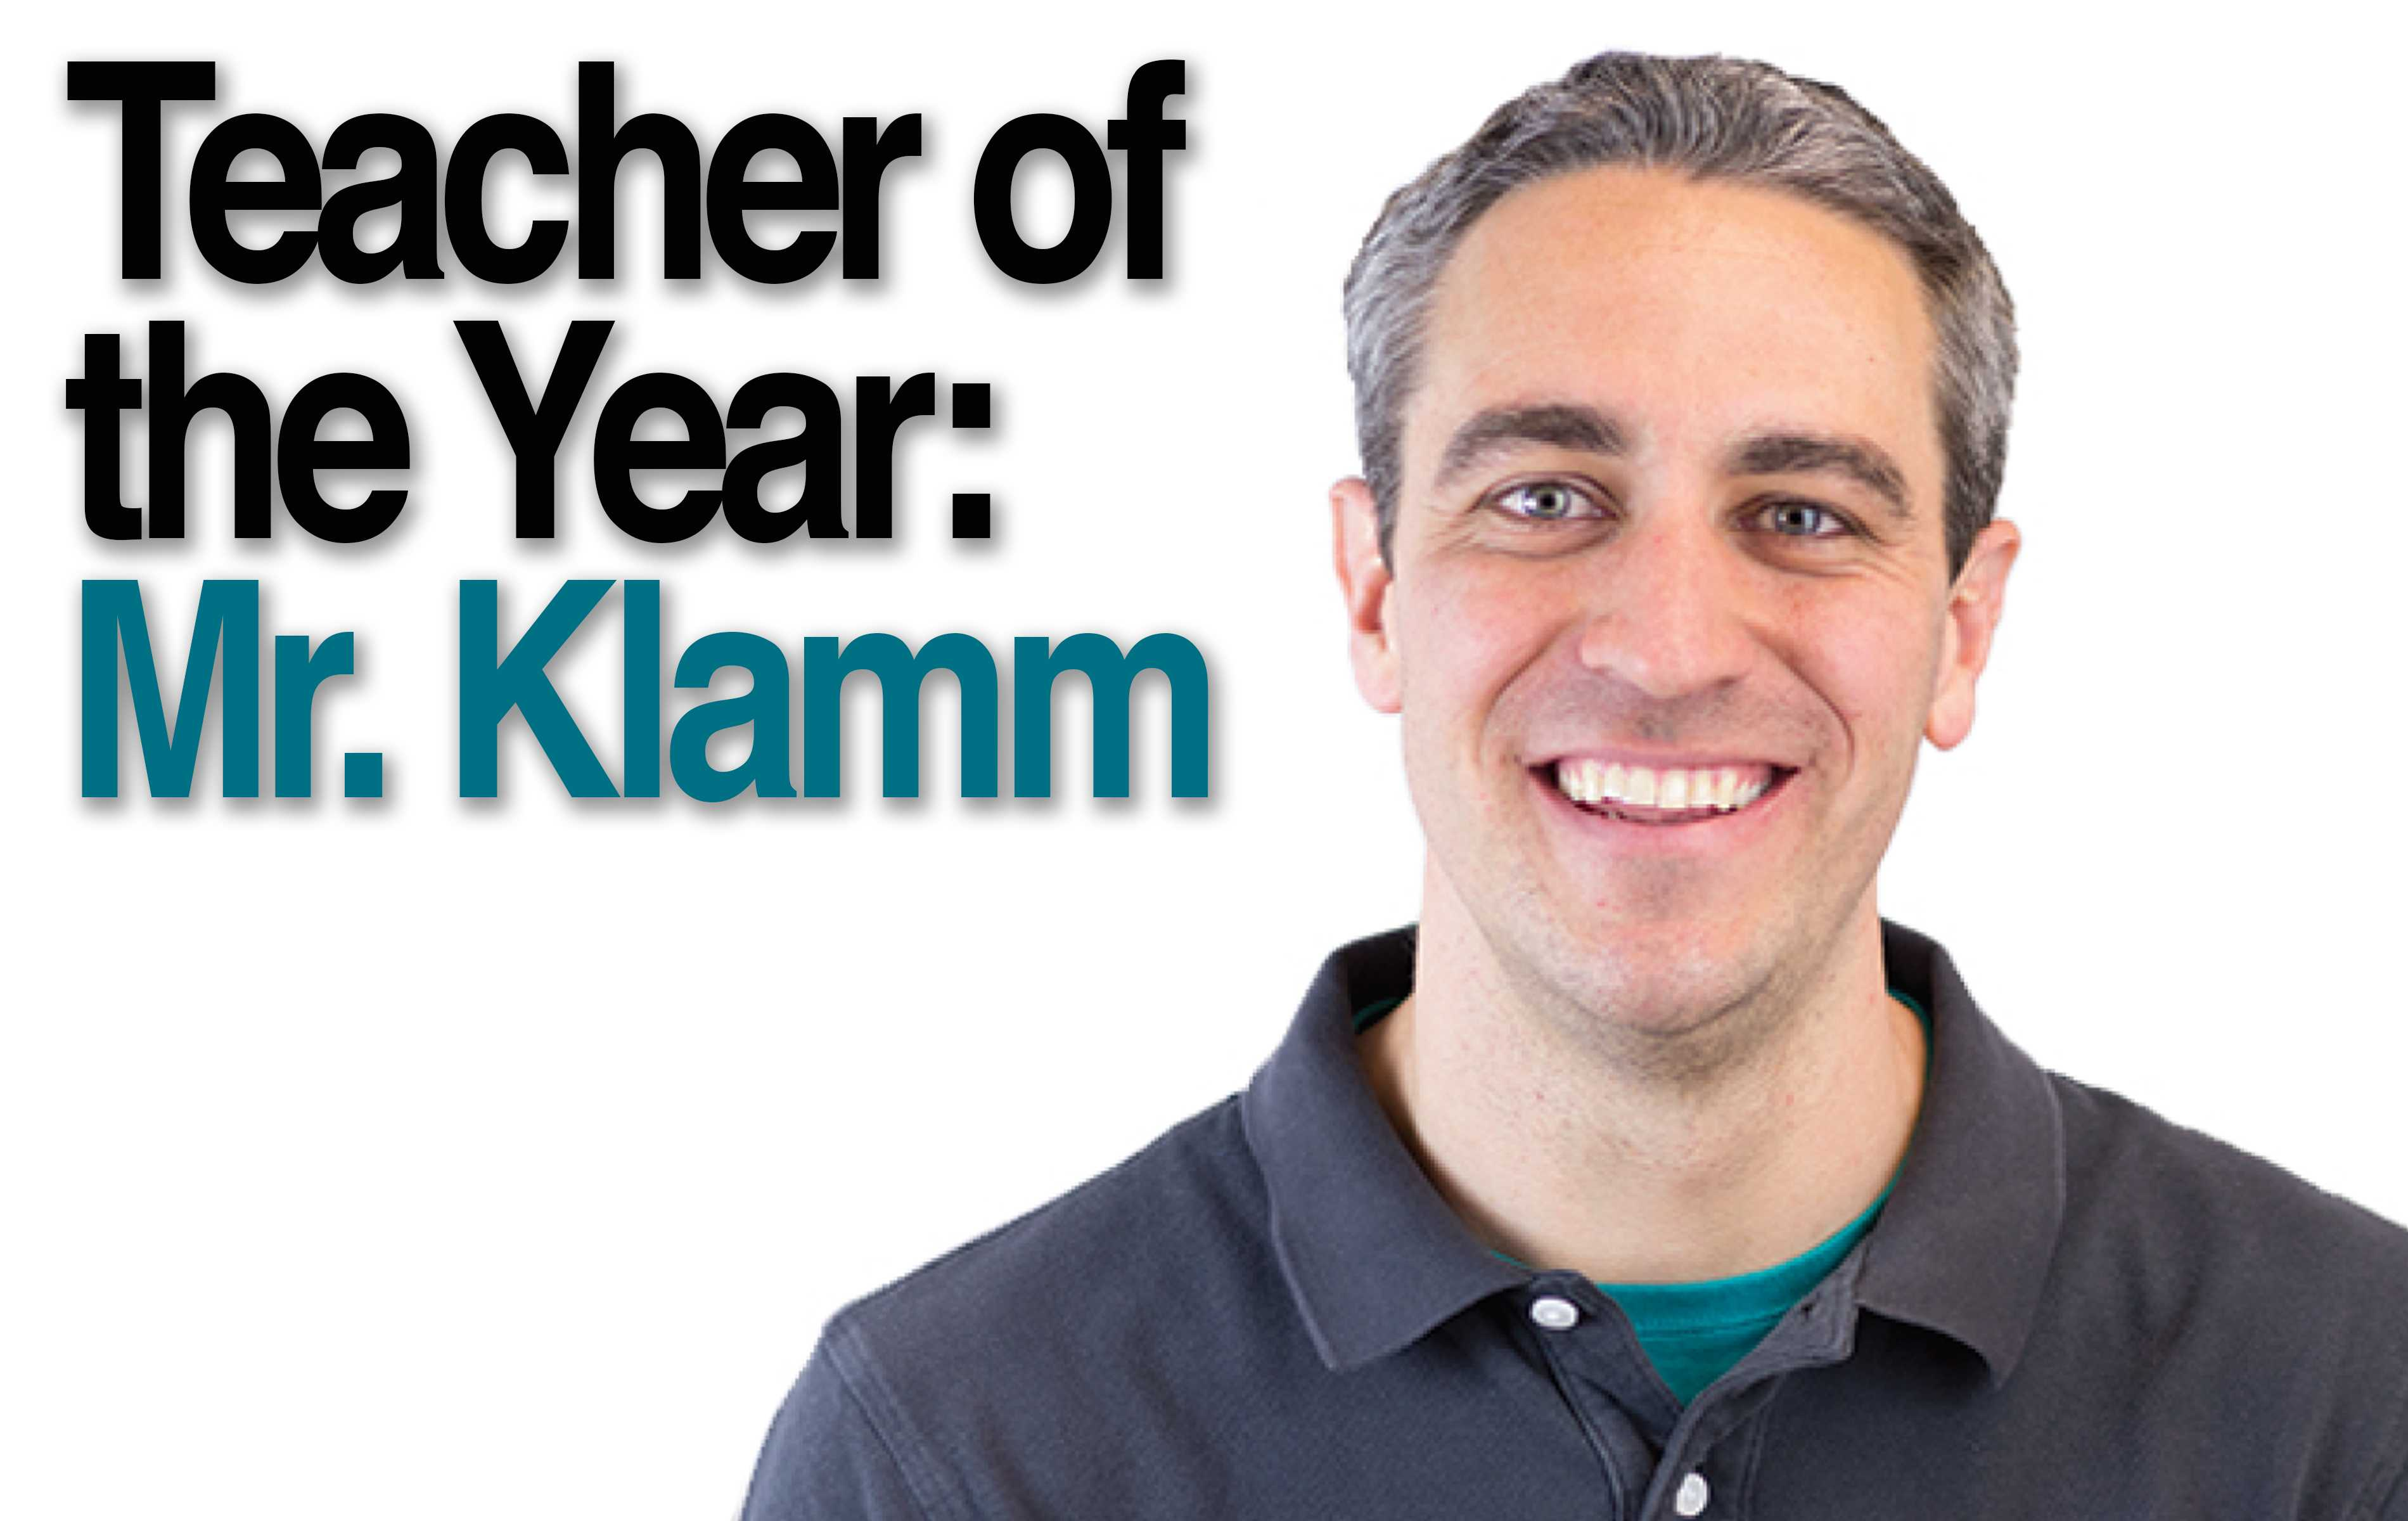 Teacher and Support Staff of the Year goes to Mr. Klamm and Mrs. Eiseman